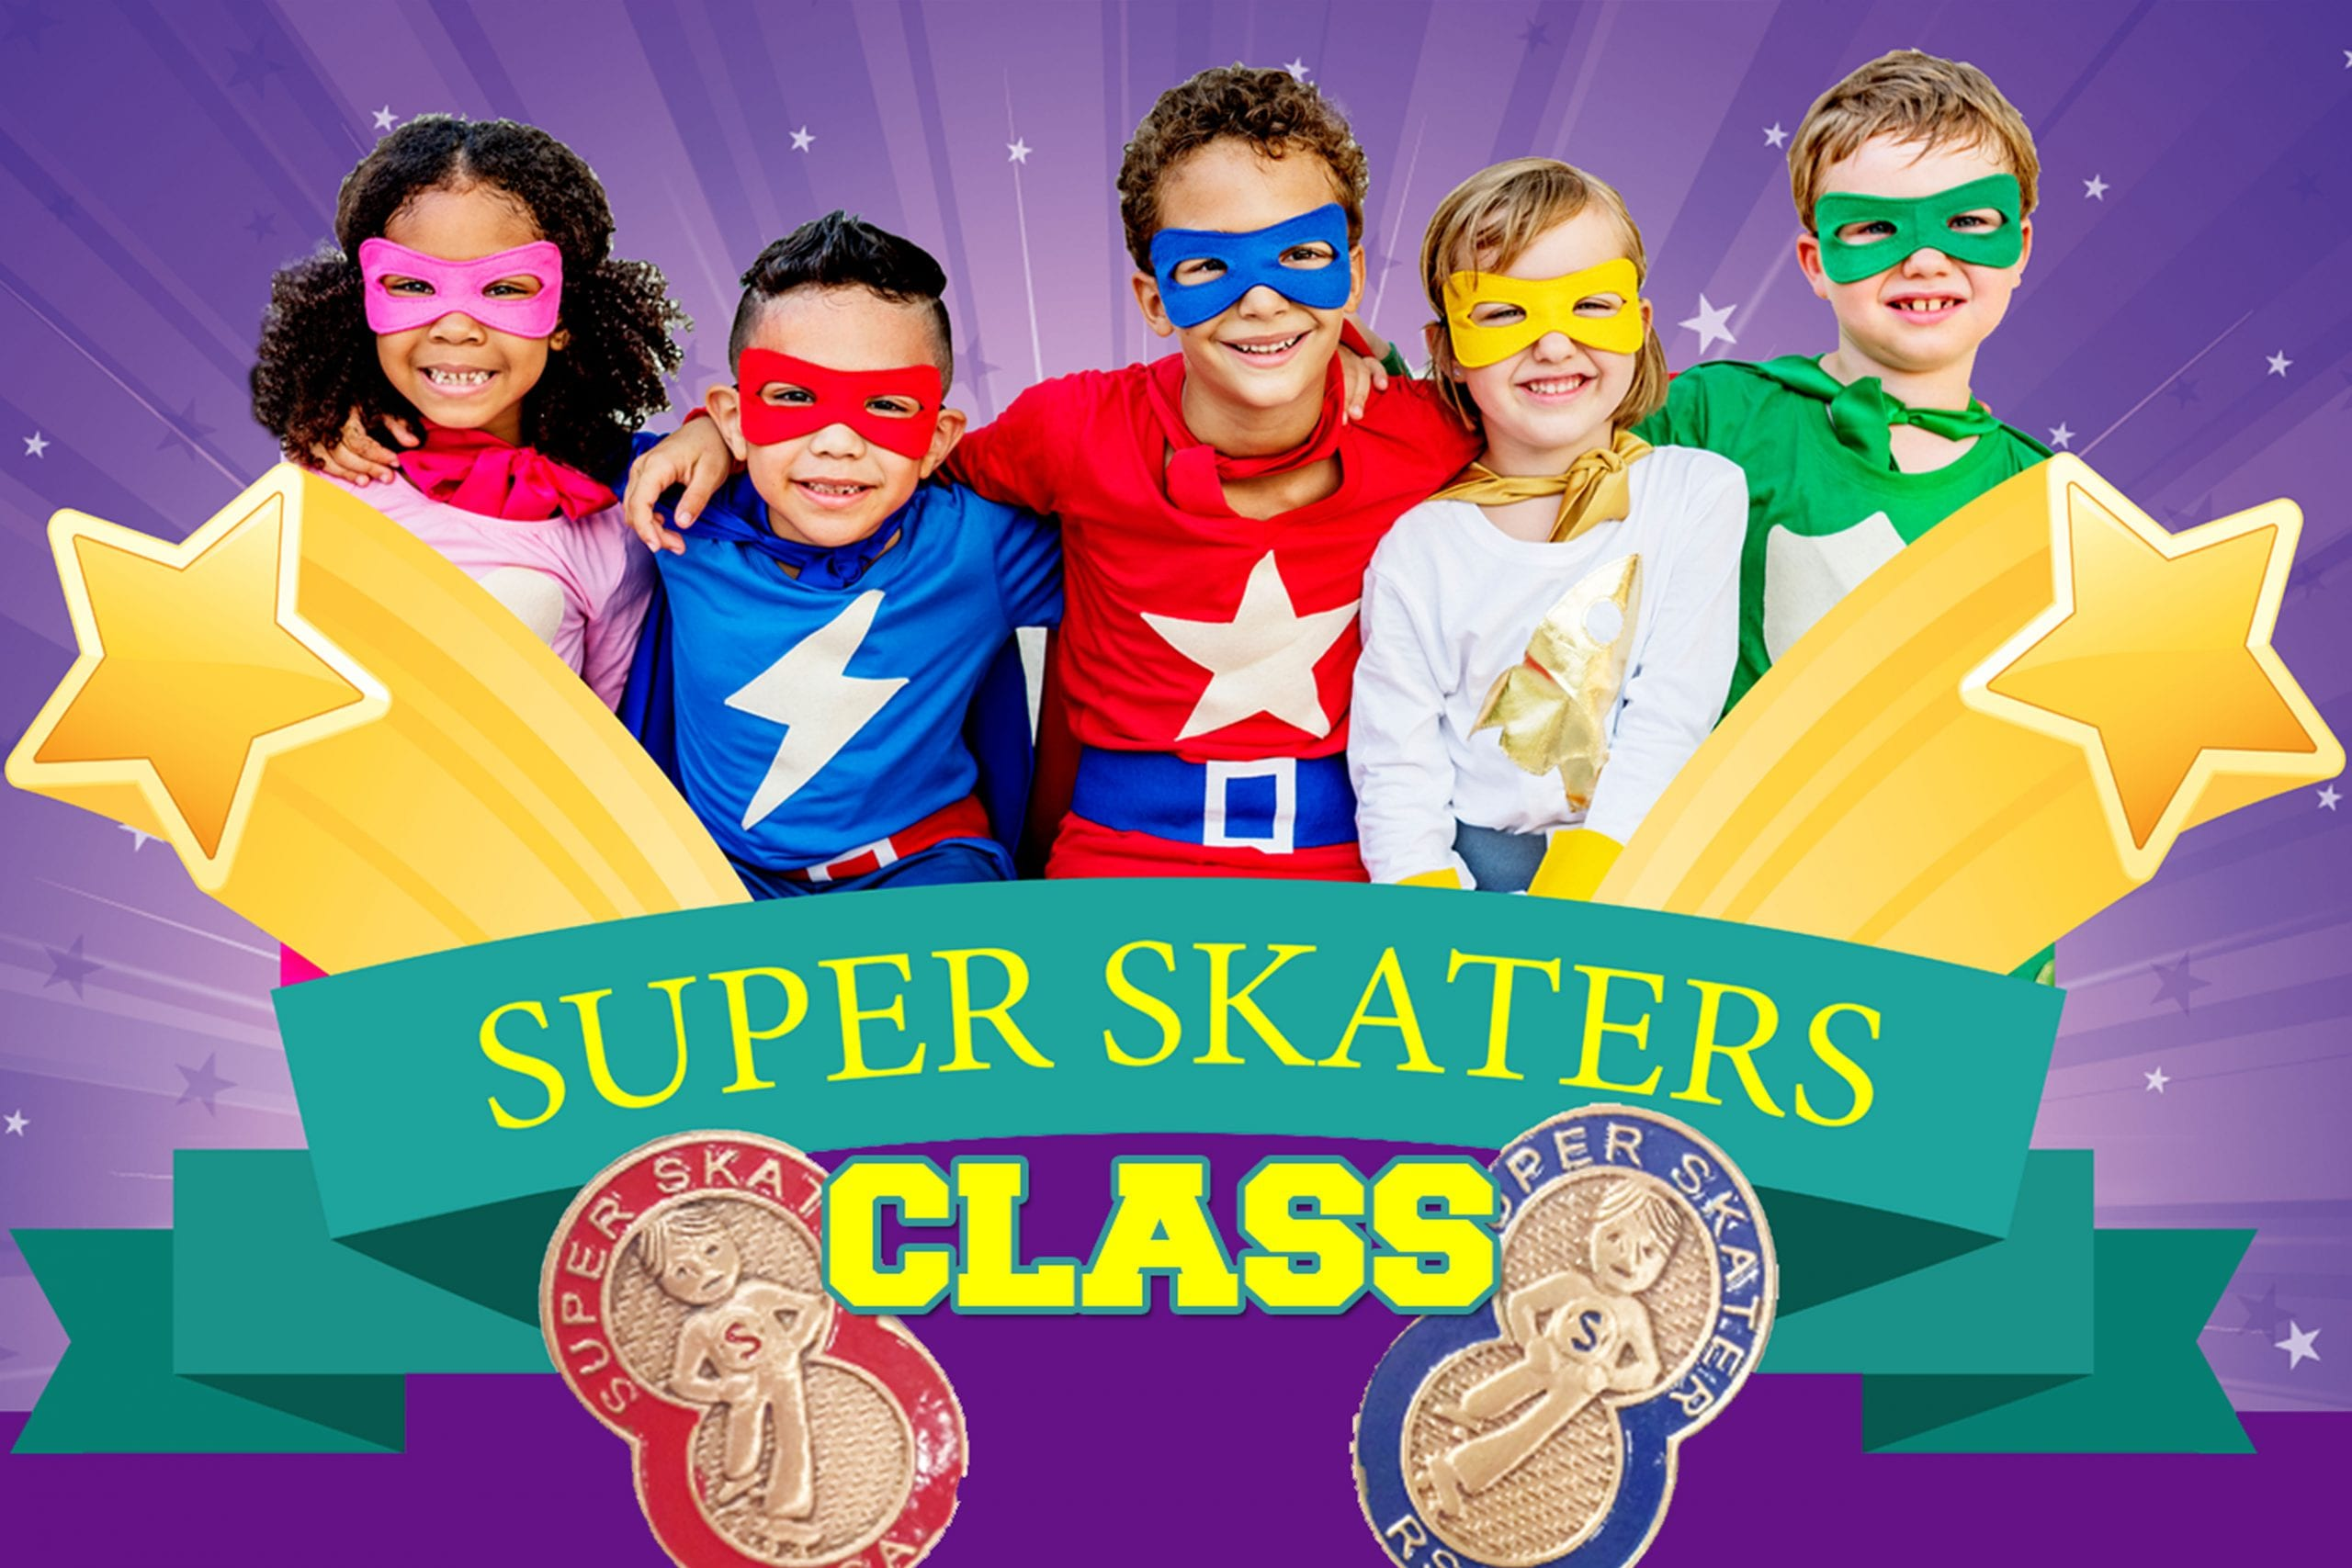 Super Skate Classes